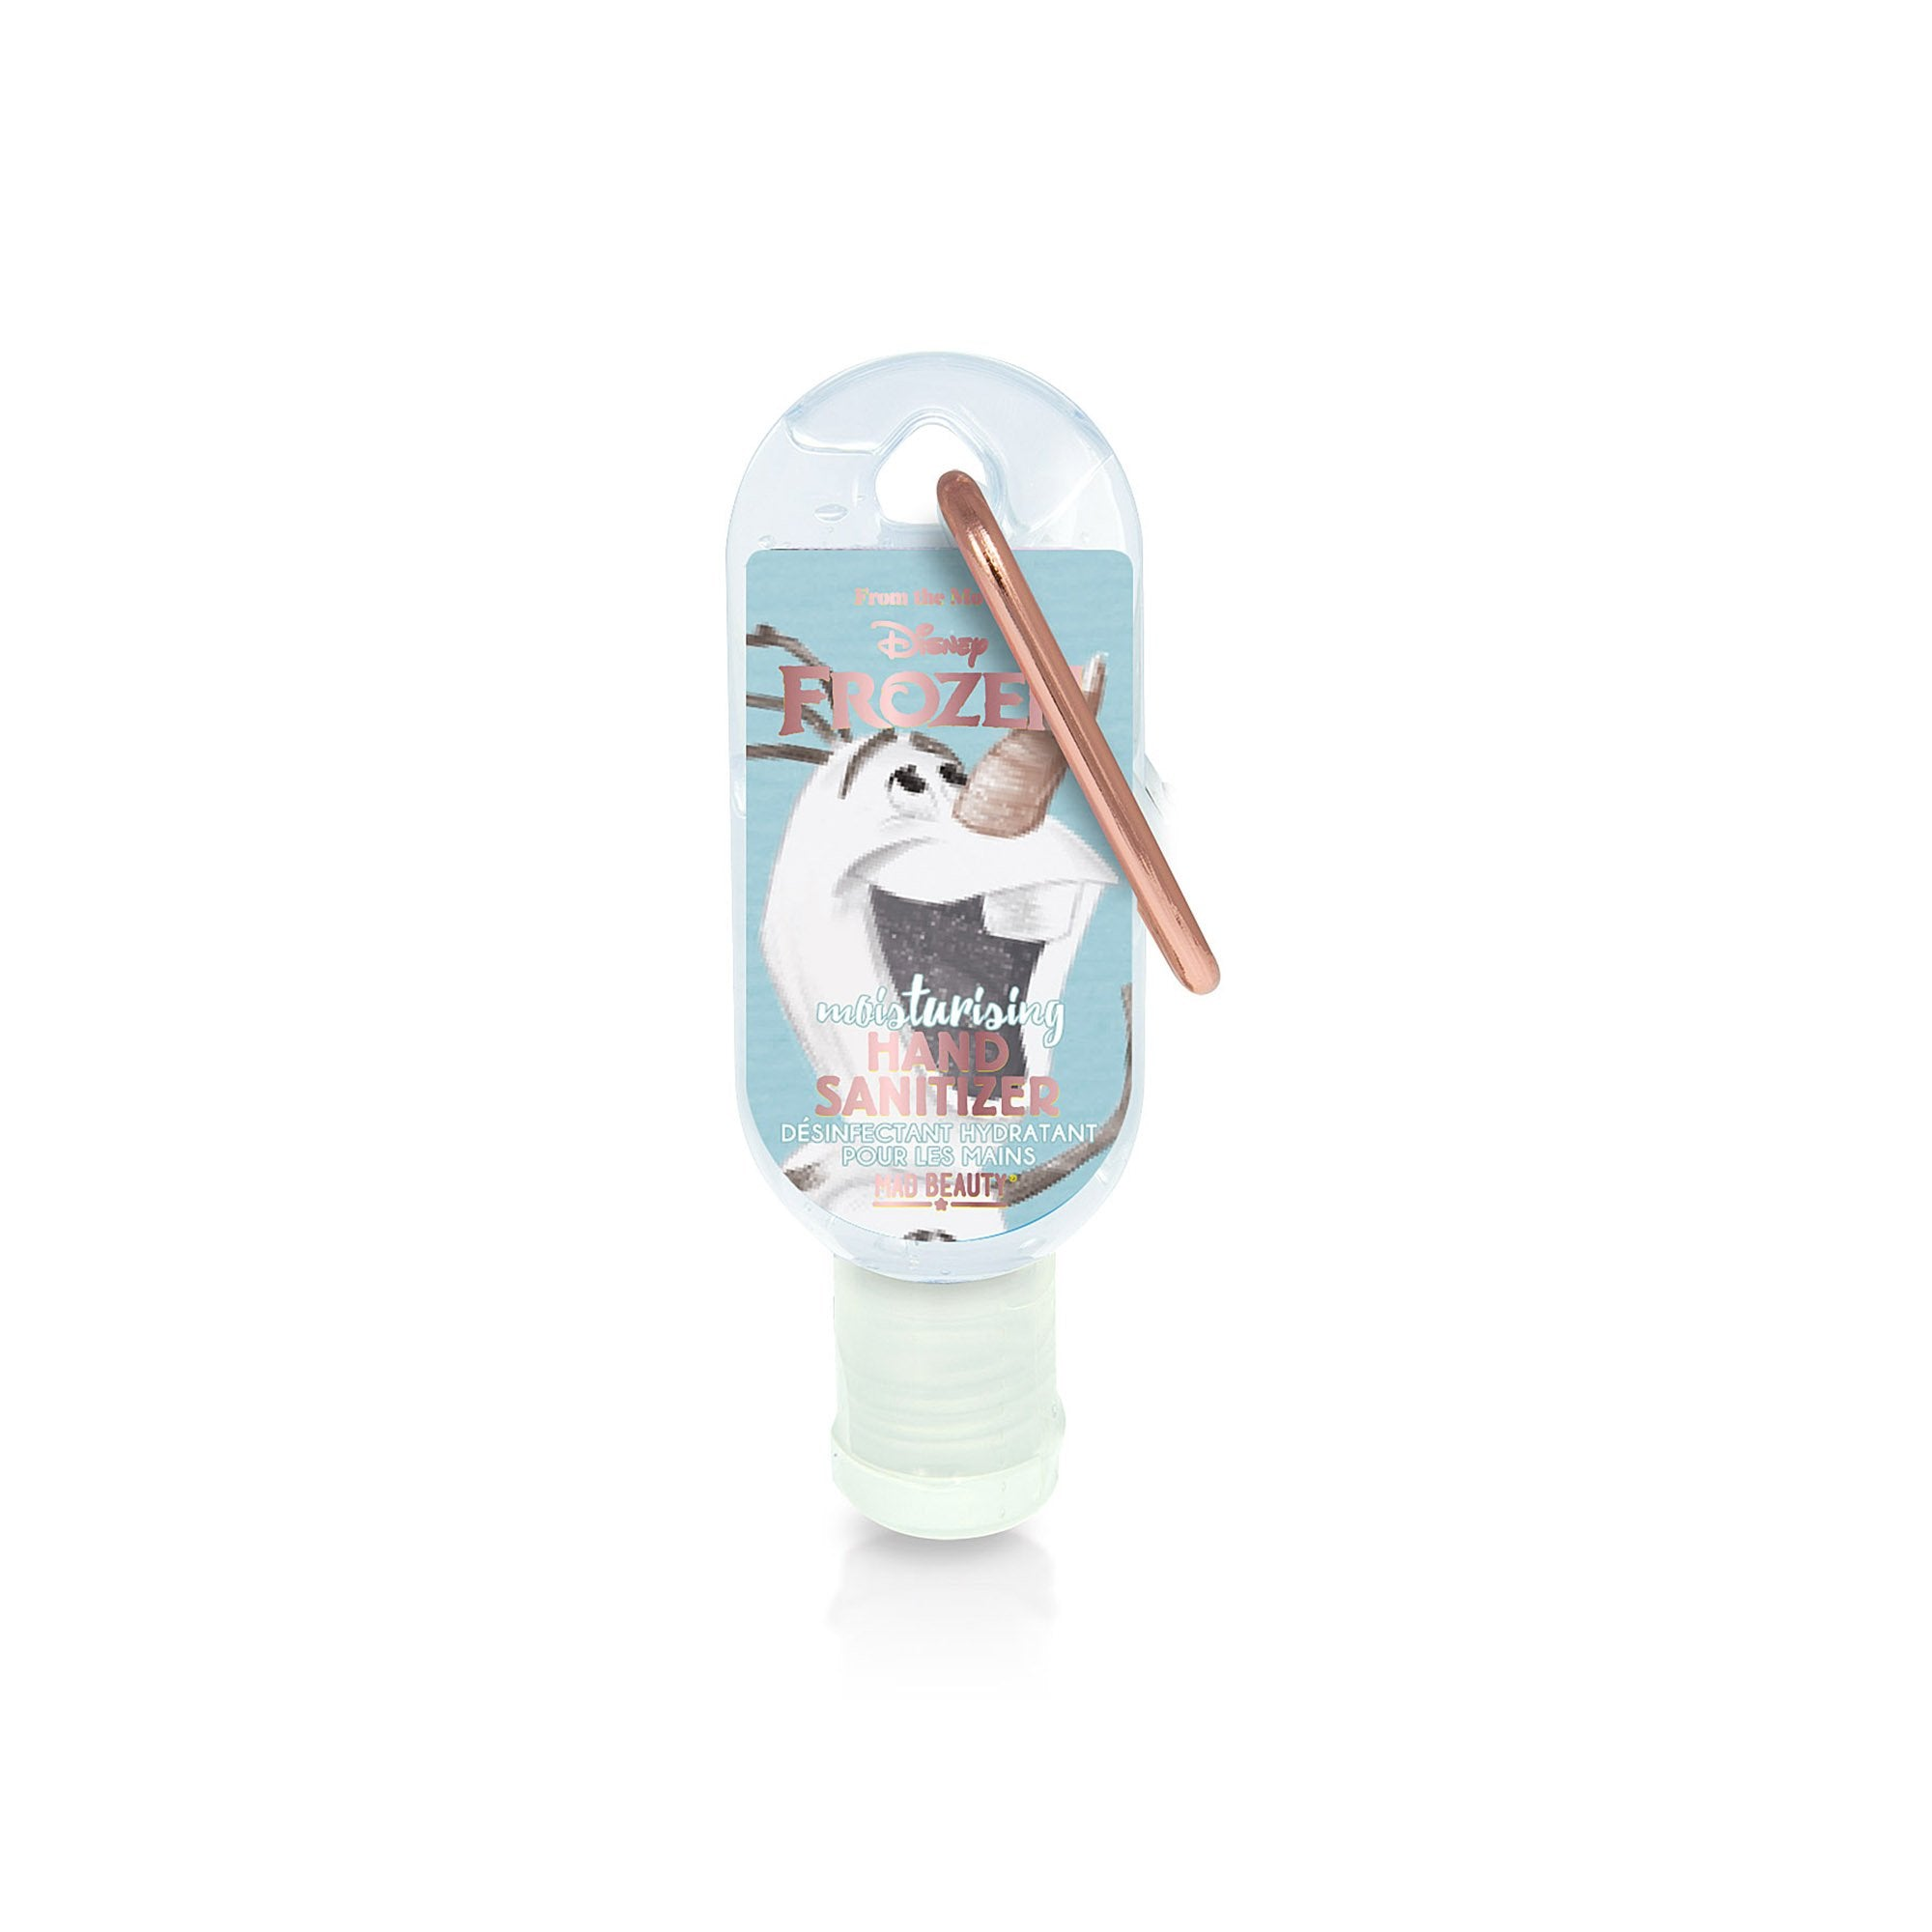 Frozen Clip & Clean Hand Sanitizer - Olaf